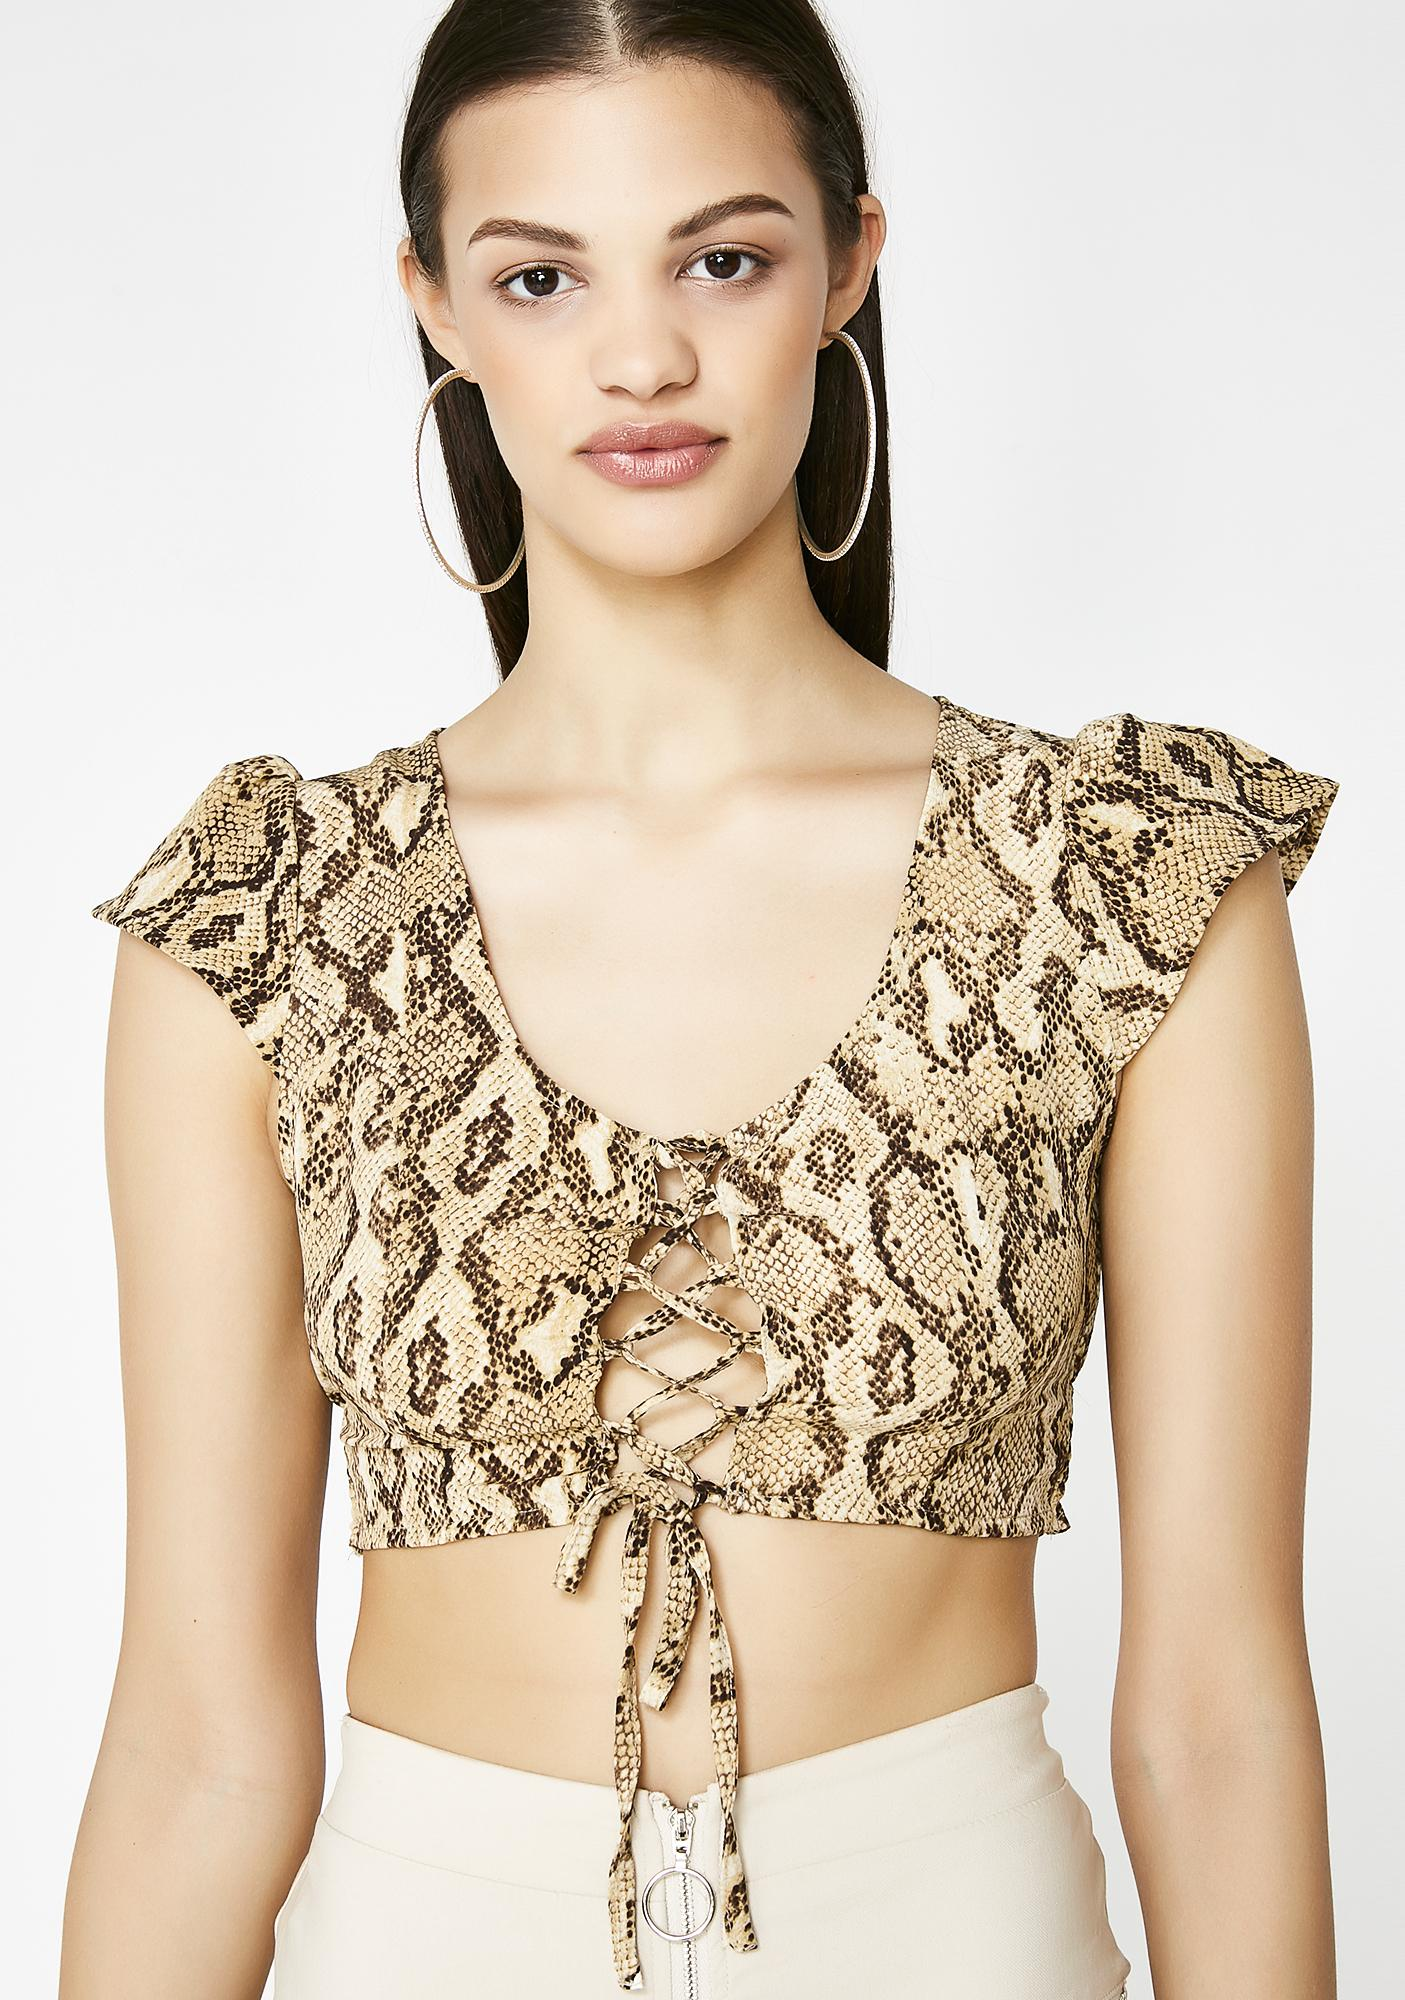 6401b2d098d89 Snakeskin Crop Top